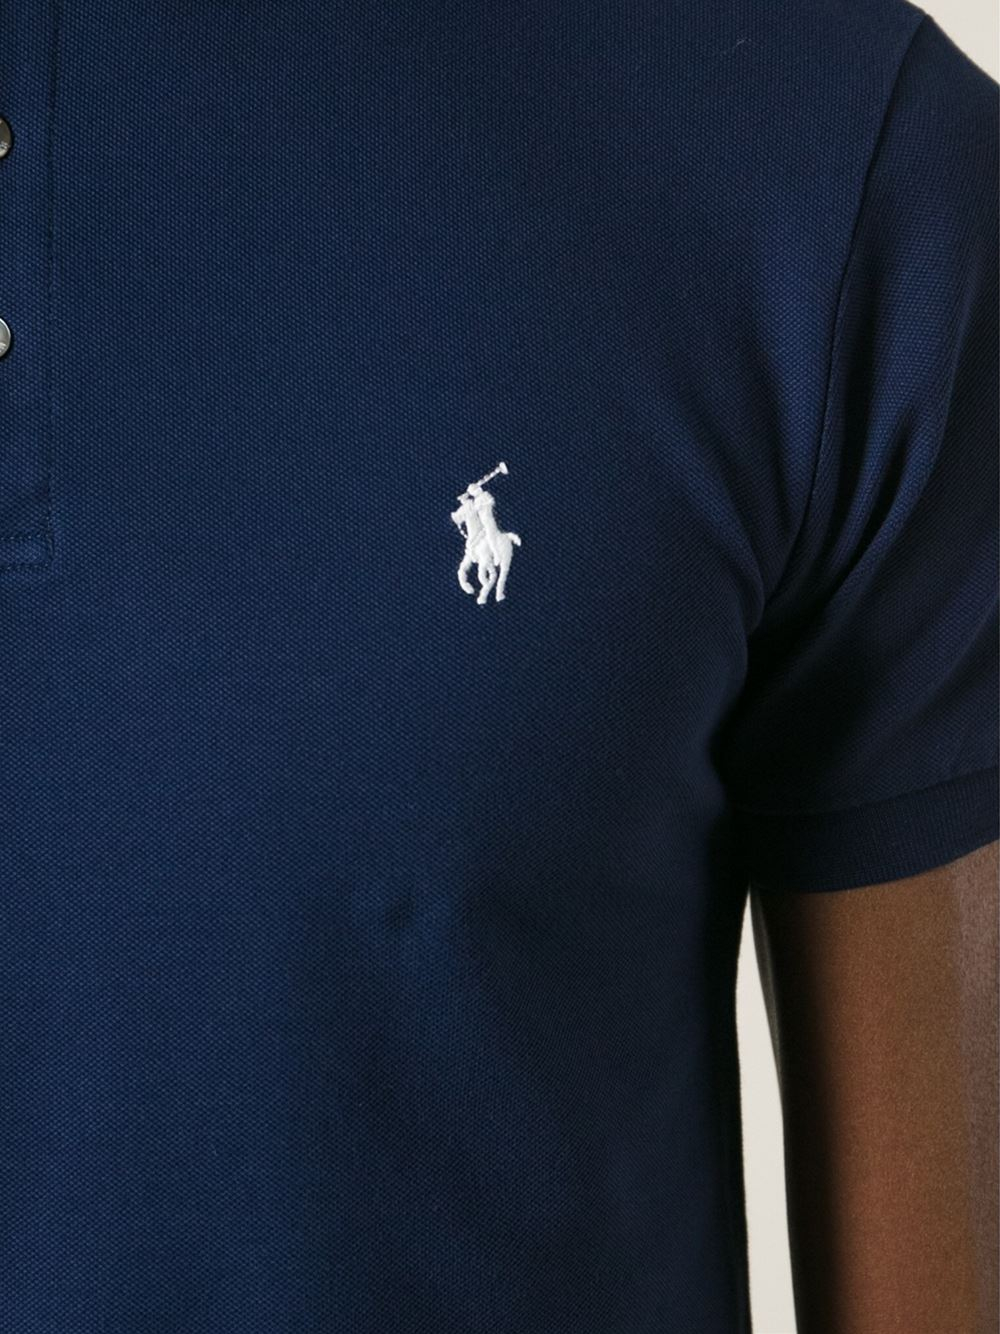 Polo Shirts Men Cheap